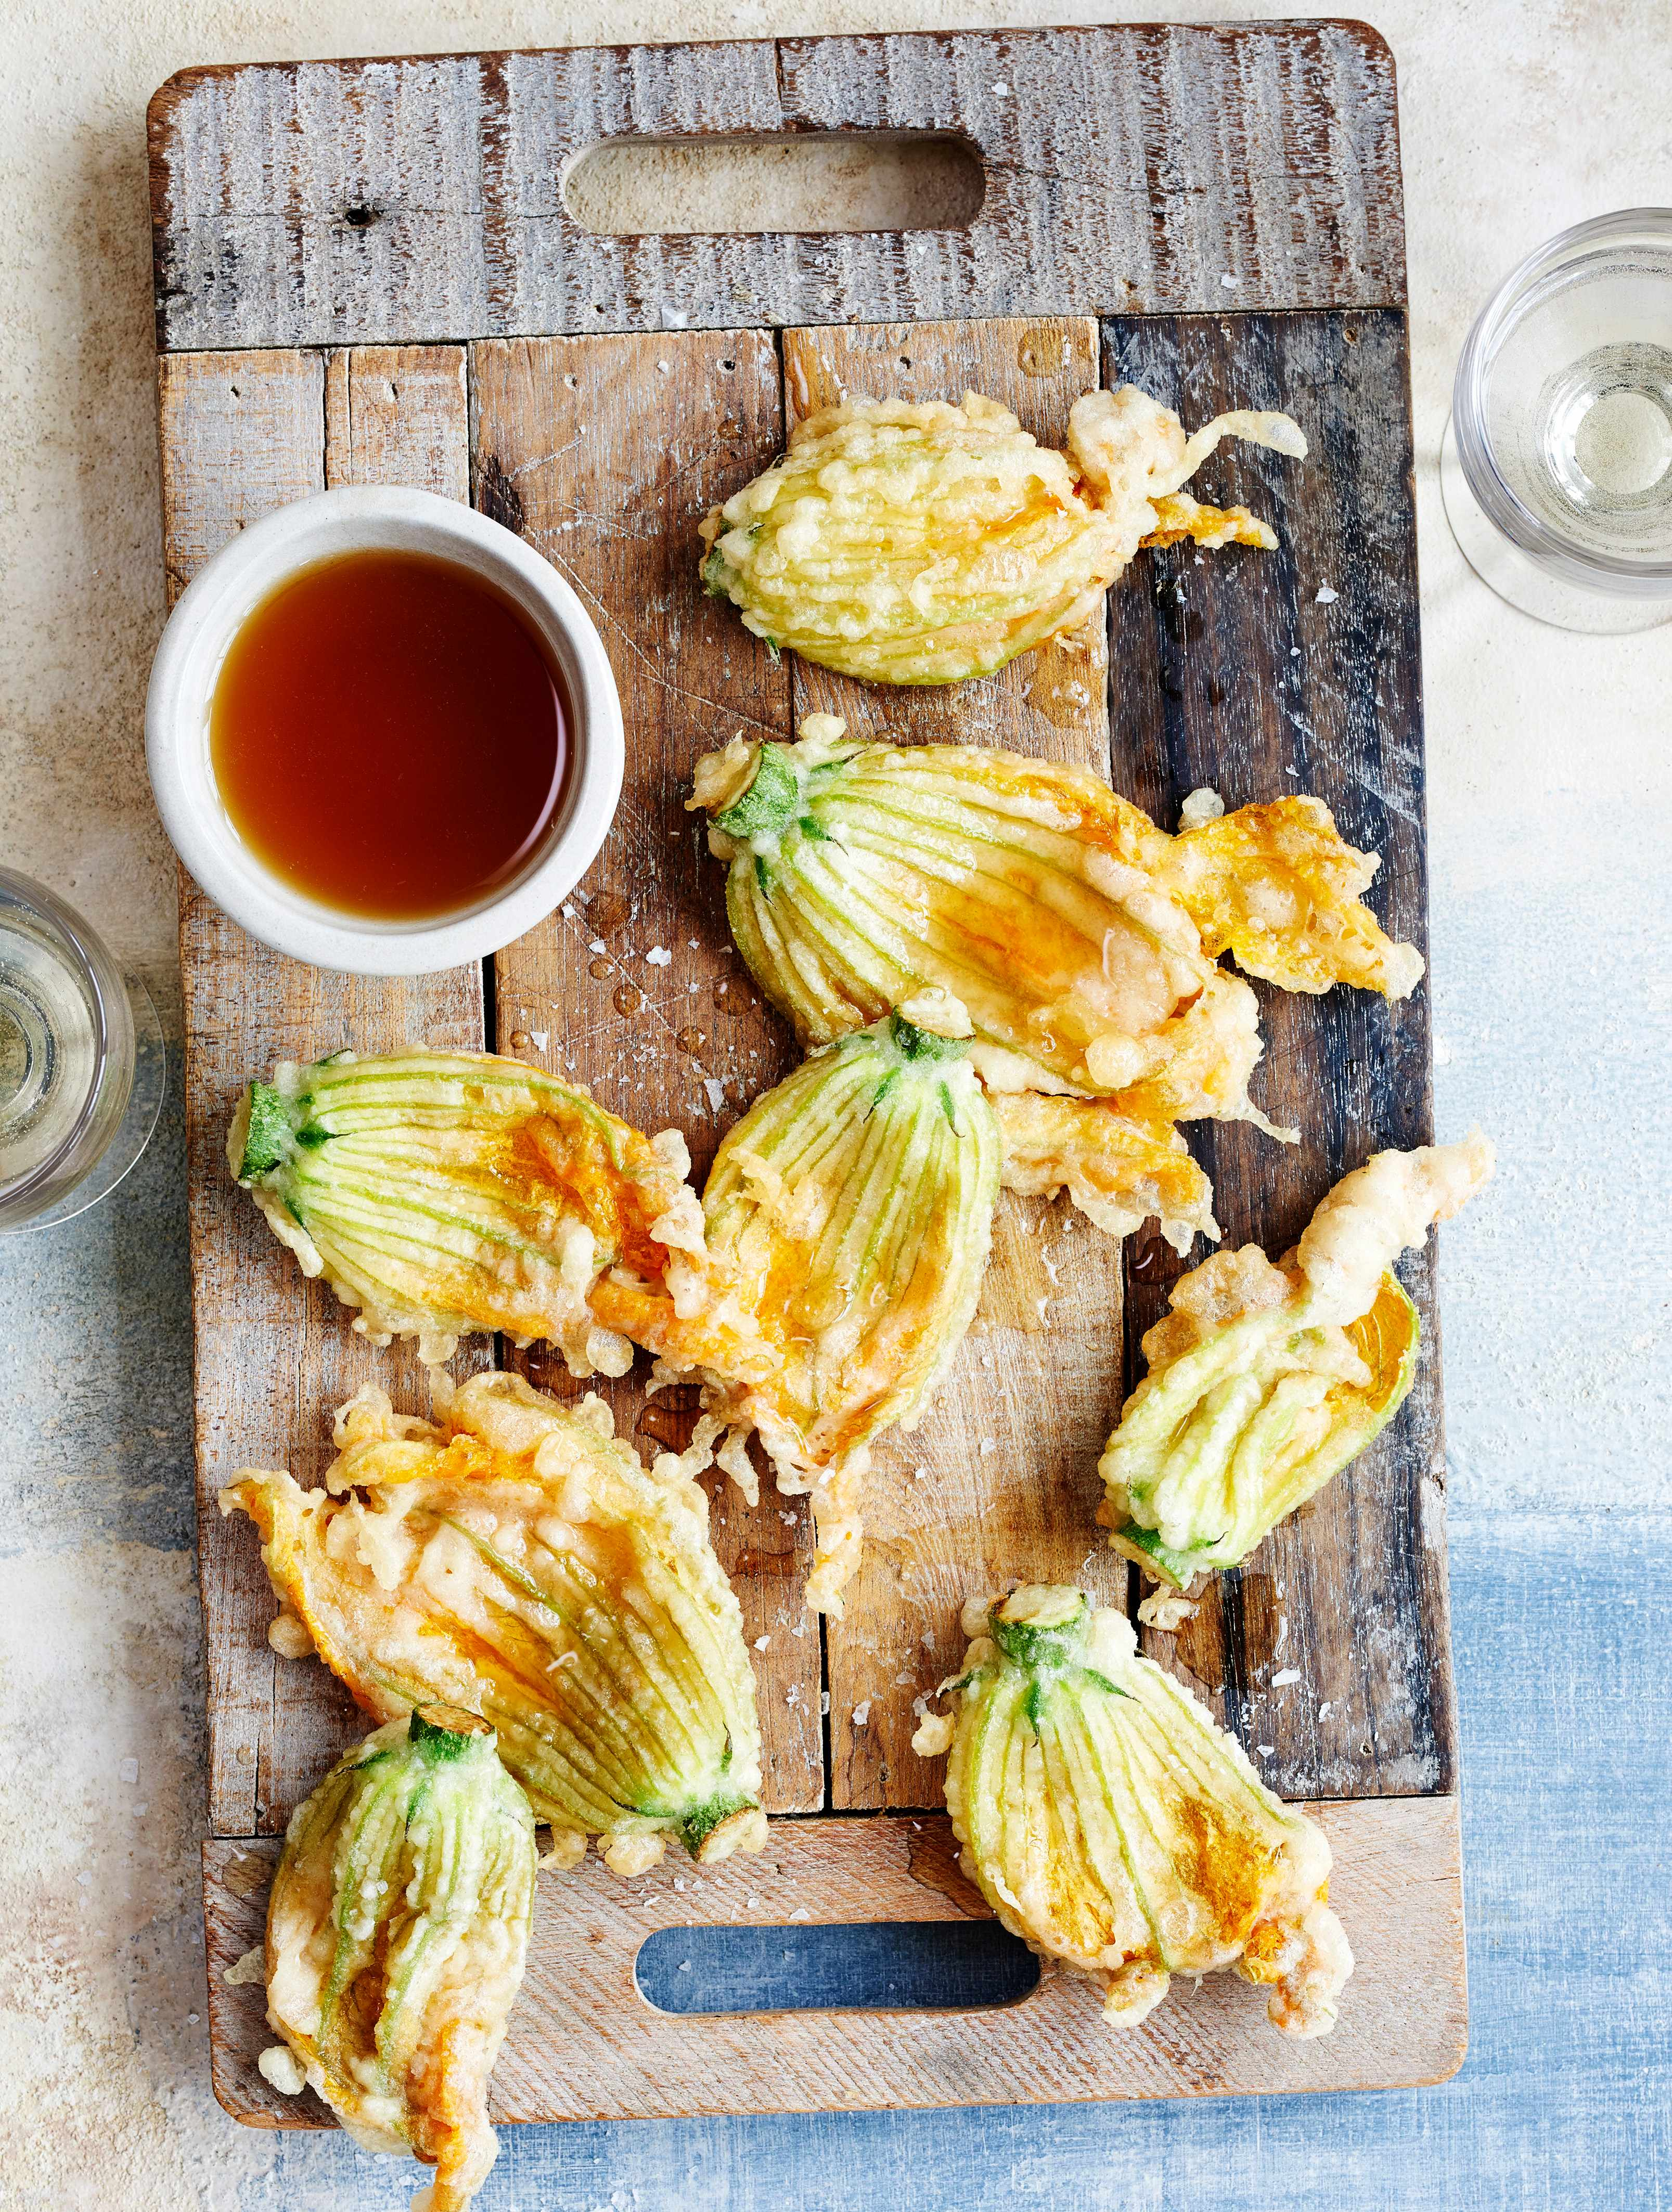 Fried Courgette Flowers Recipe With Honey and Vinegar